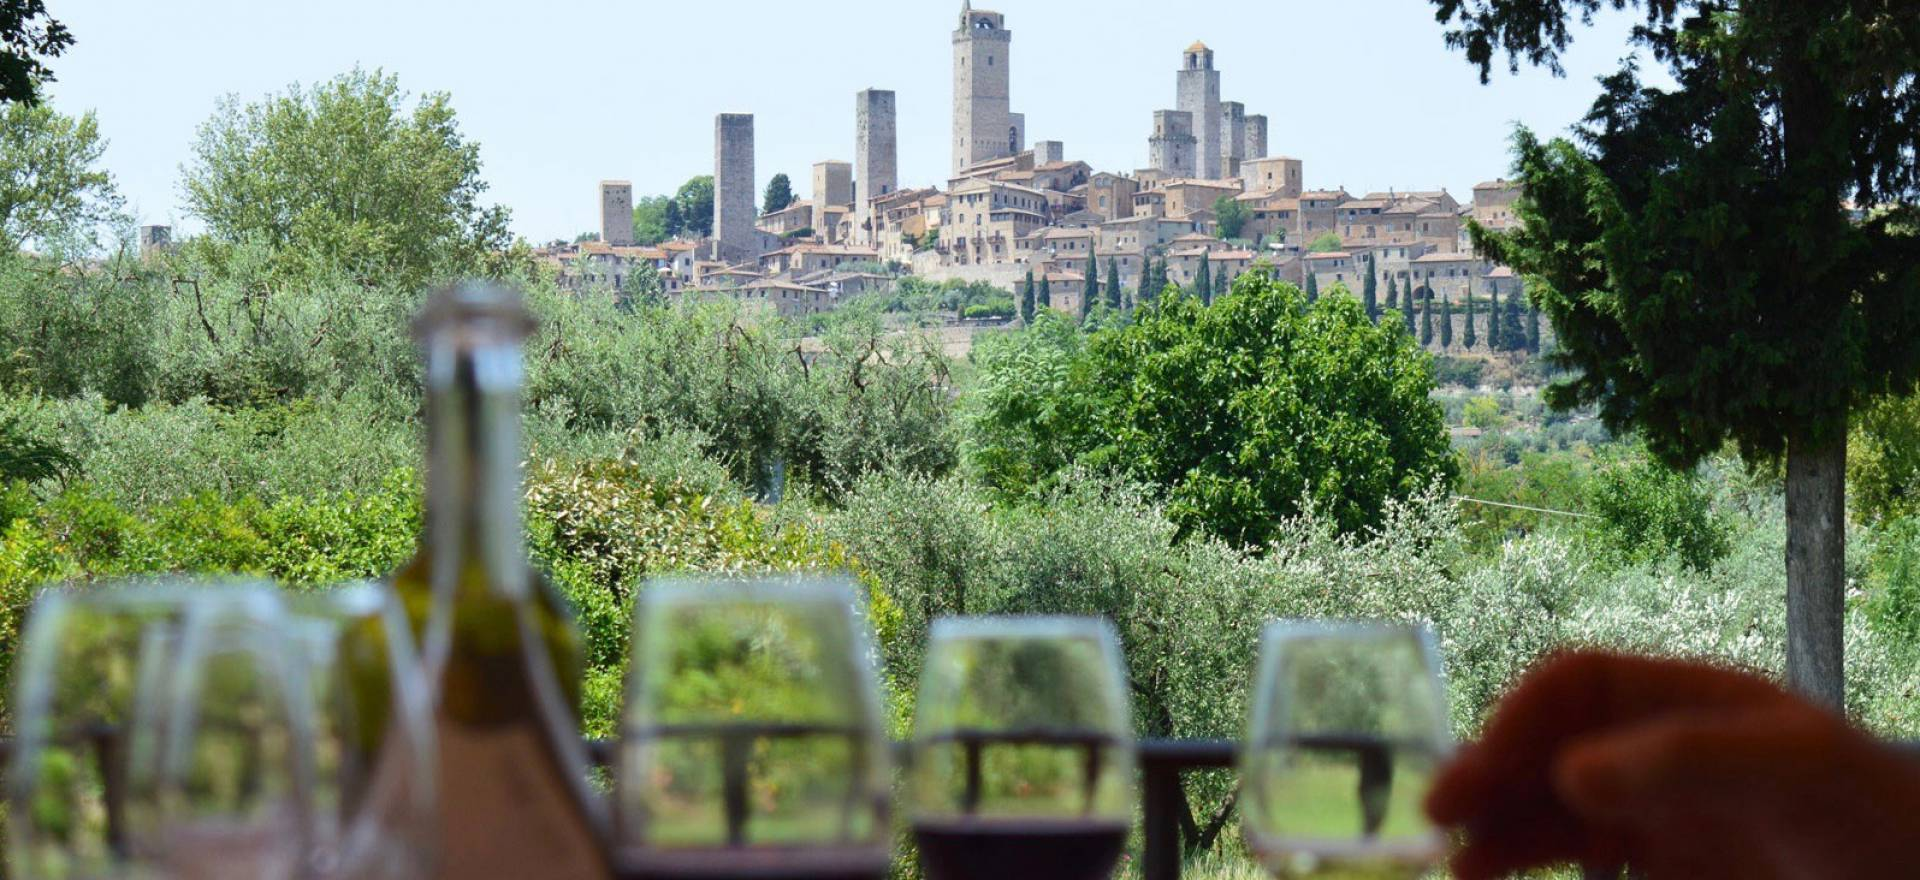 Agriturismo Tuscany Romantic agriturismo with views of San Gimignano